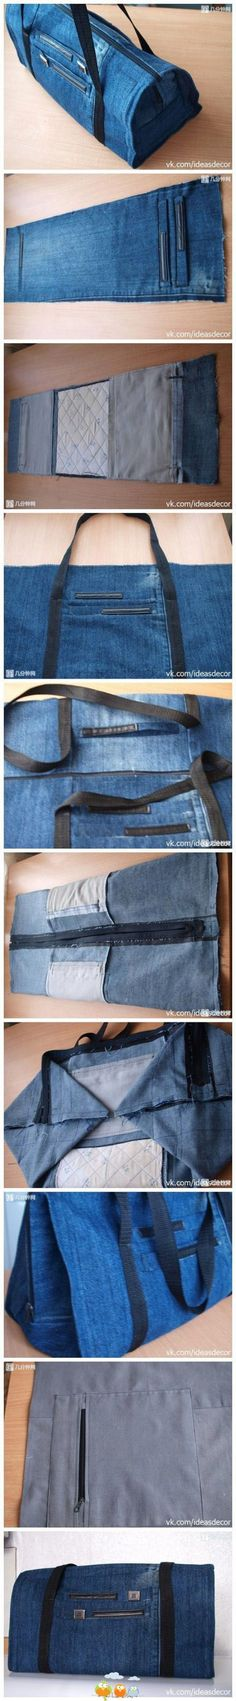 repurpose jeans into a bag